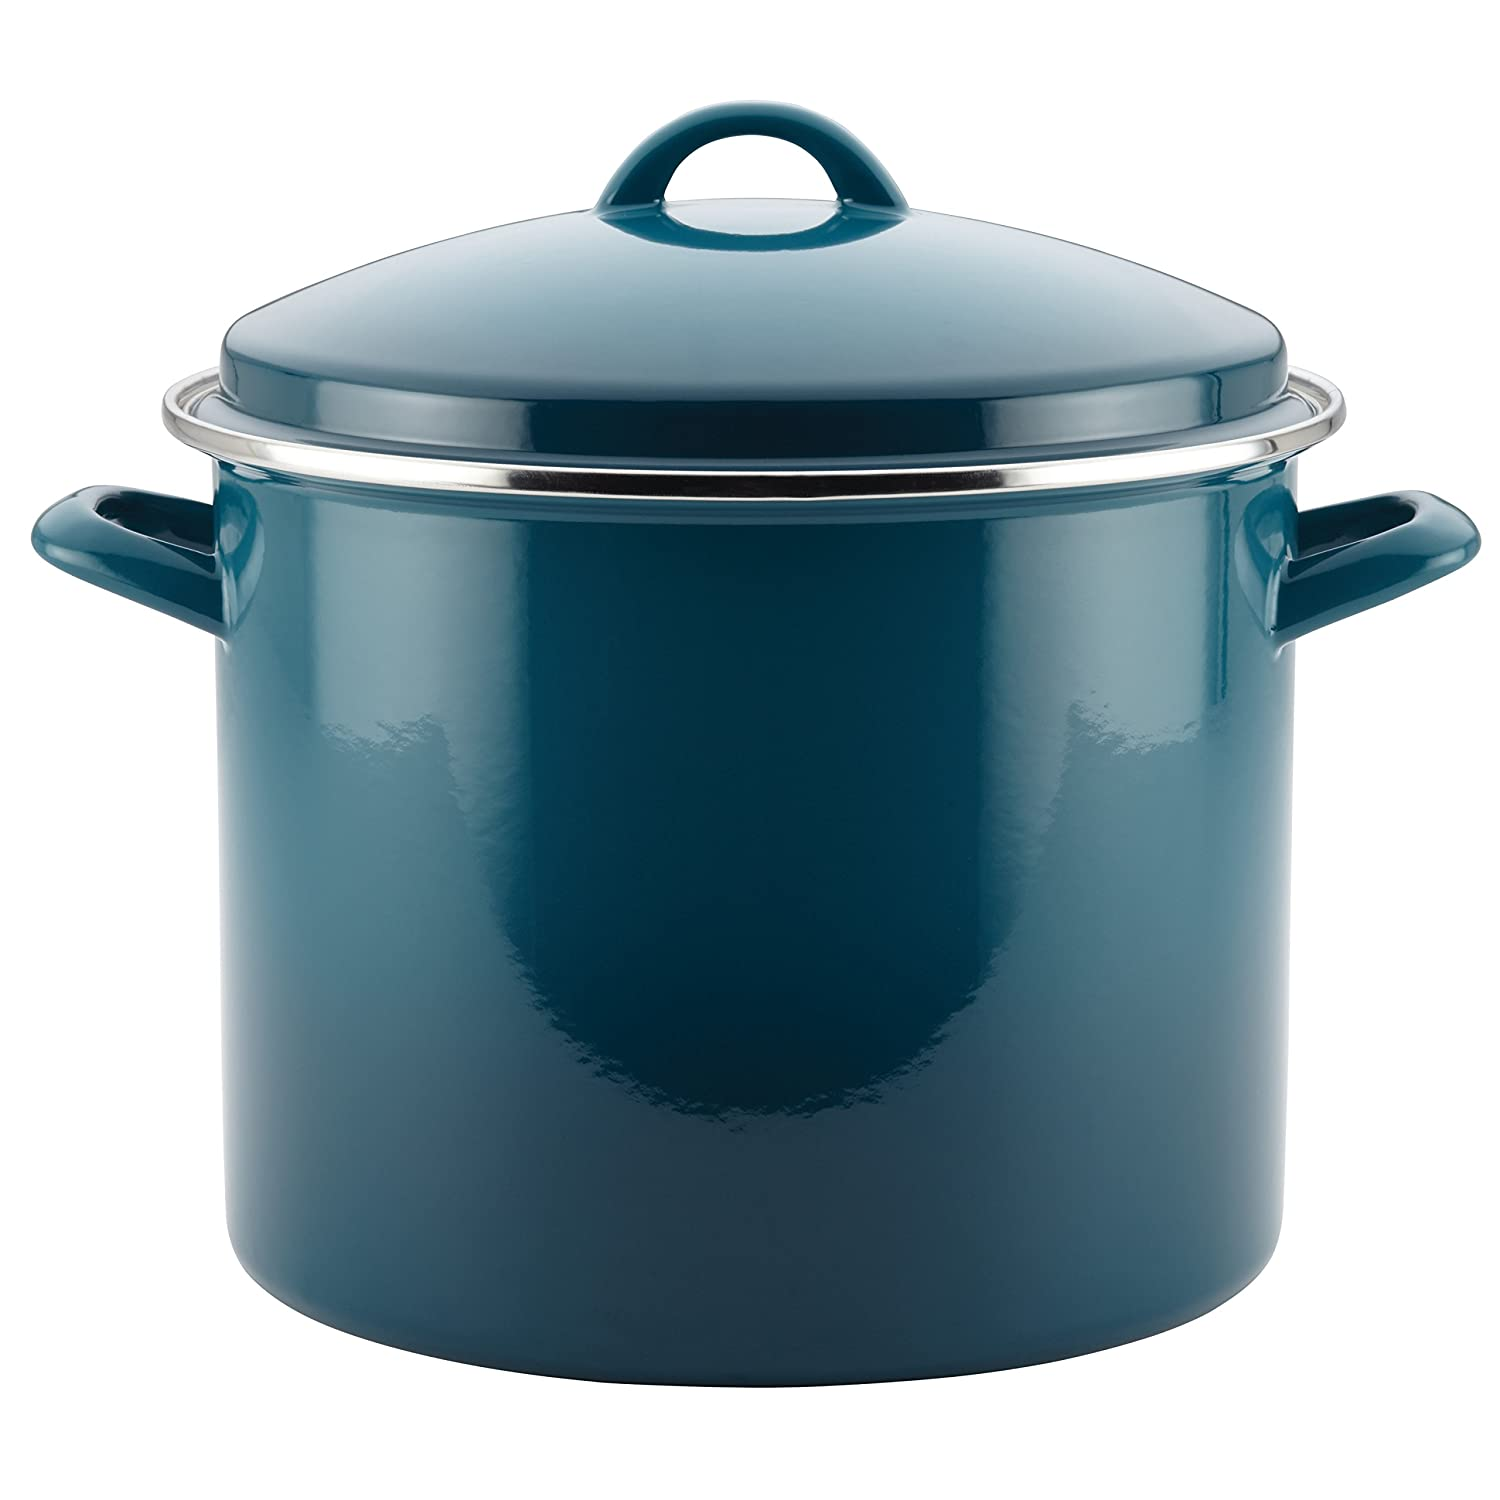 Rachael Ray Enamel on Steel 12-Quart Covered Stockpot, Marine Blue Meyer Corporation 46326